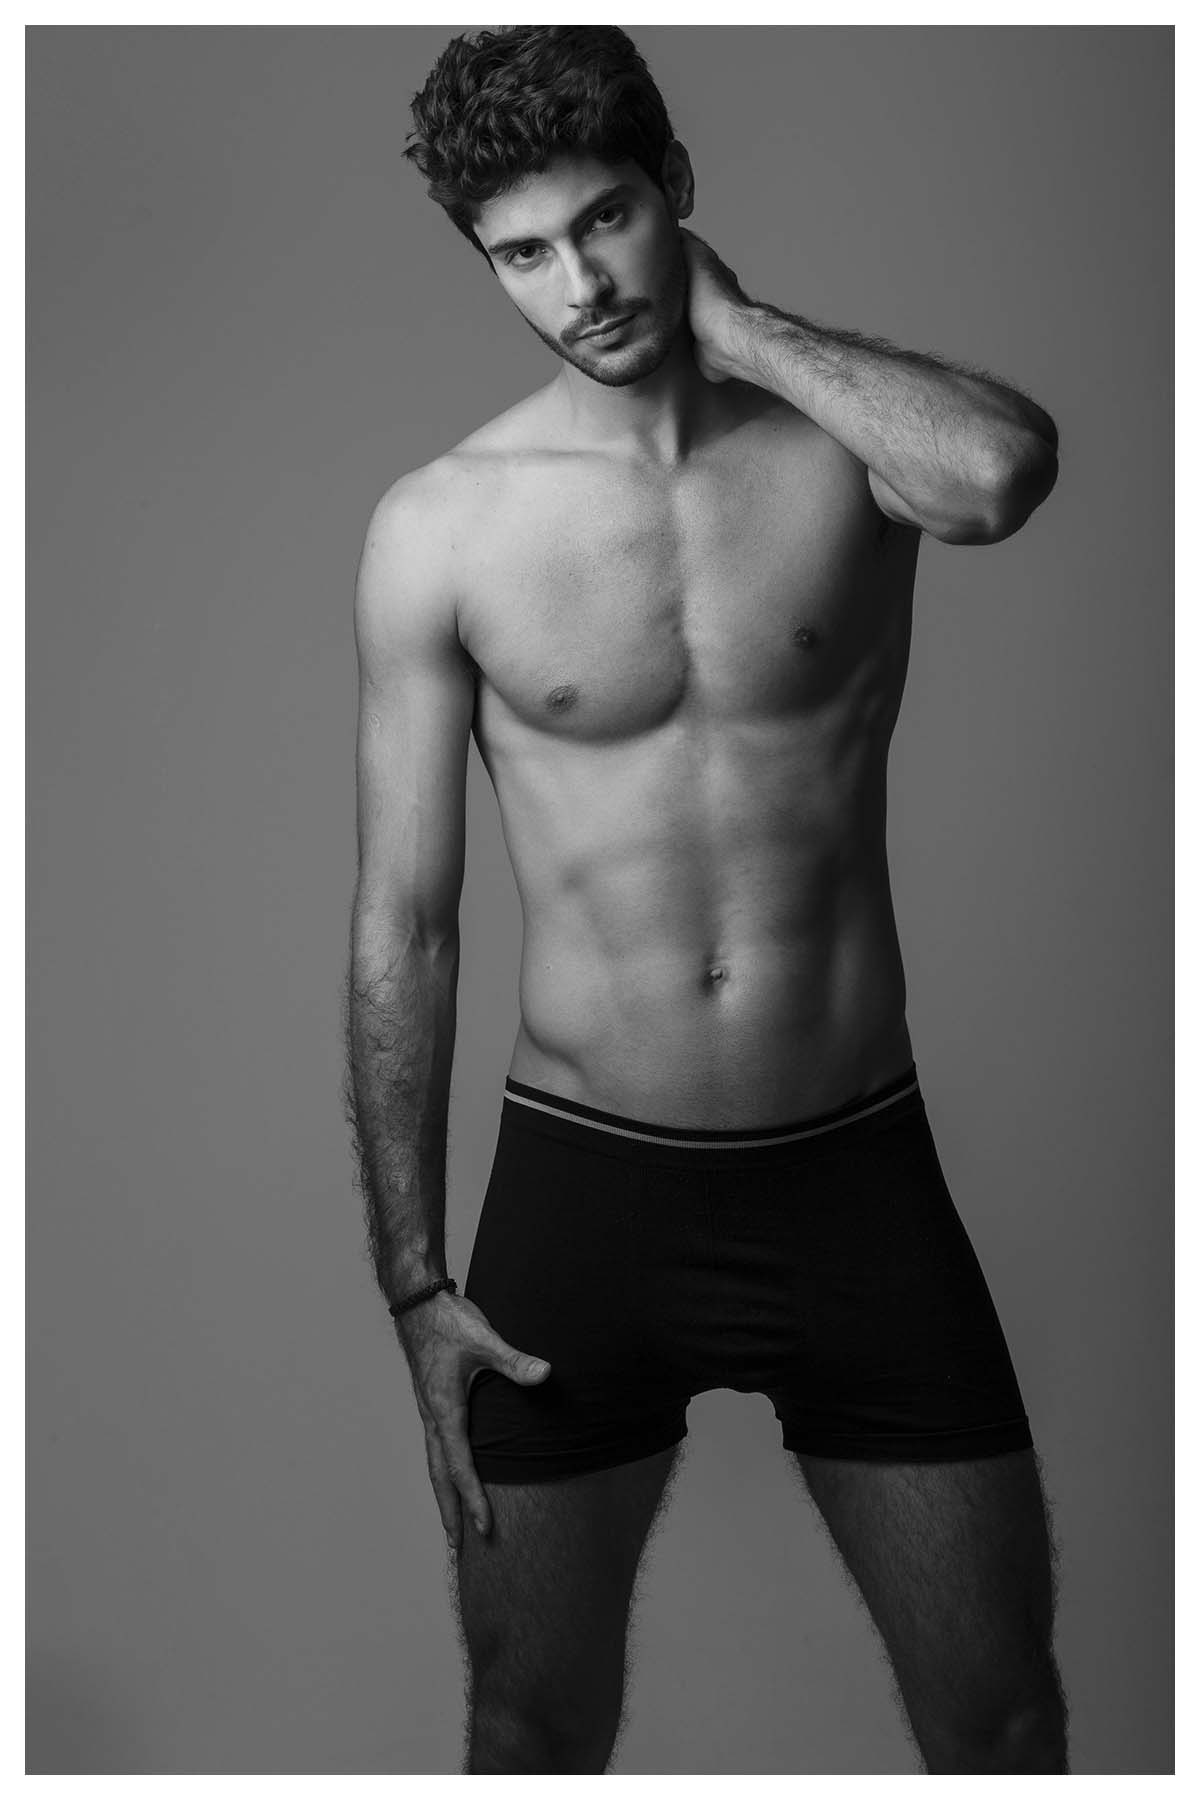 Artur Viegas by Lucio Luna for Brazilian Male Model